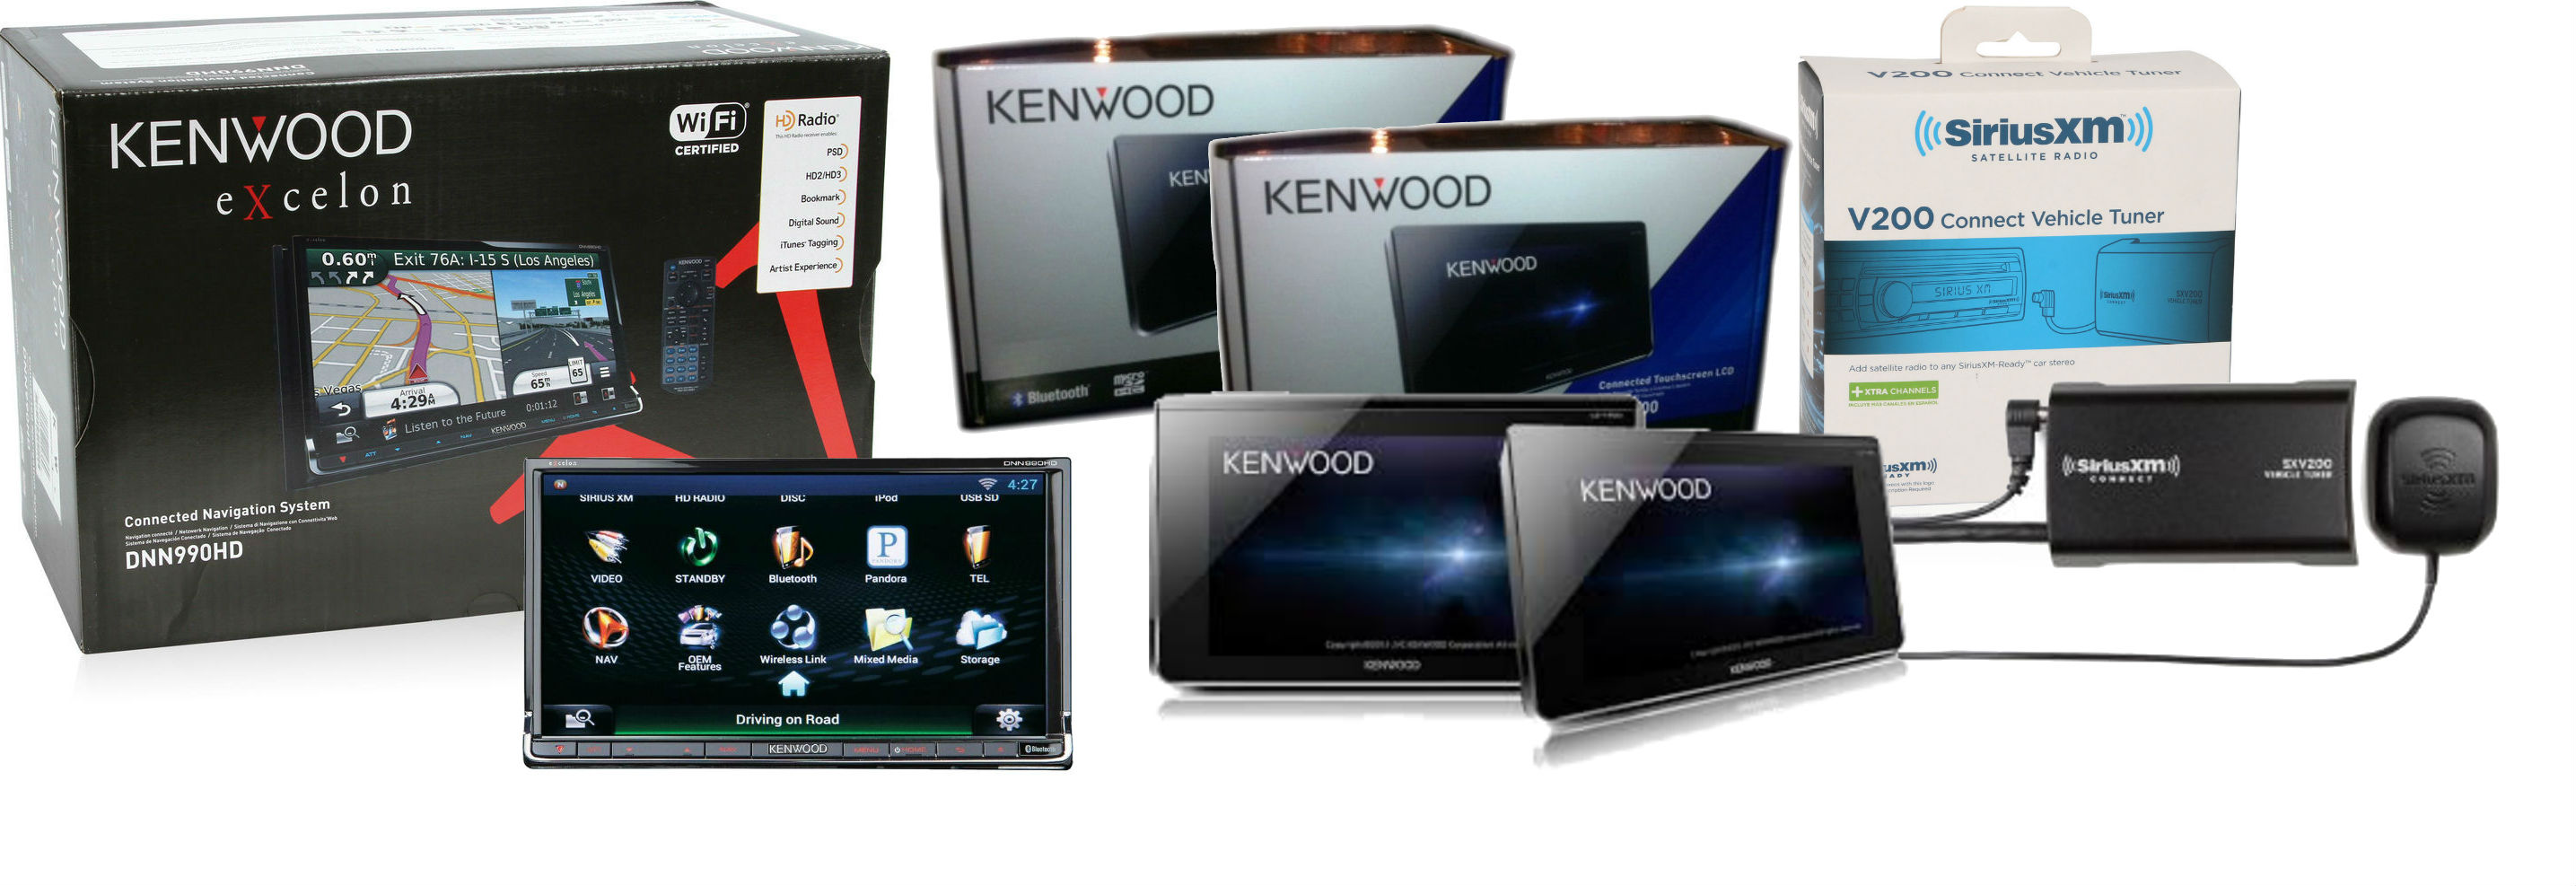 "Kenwood DNN990HD and TWO LZ-T700 7"" Capacitive Touchscreen Displays with SiriusXM SXV200V1 Sirius Tuner Bundle"